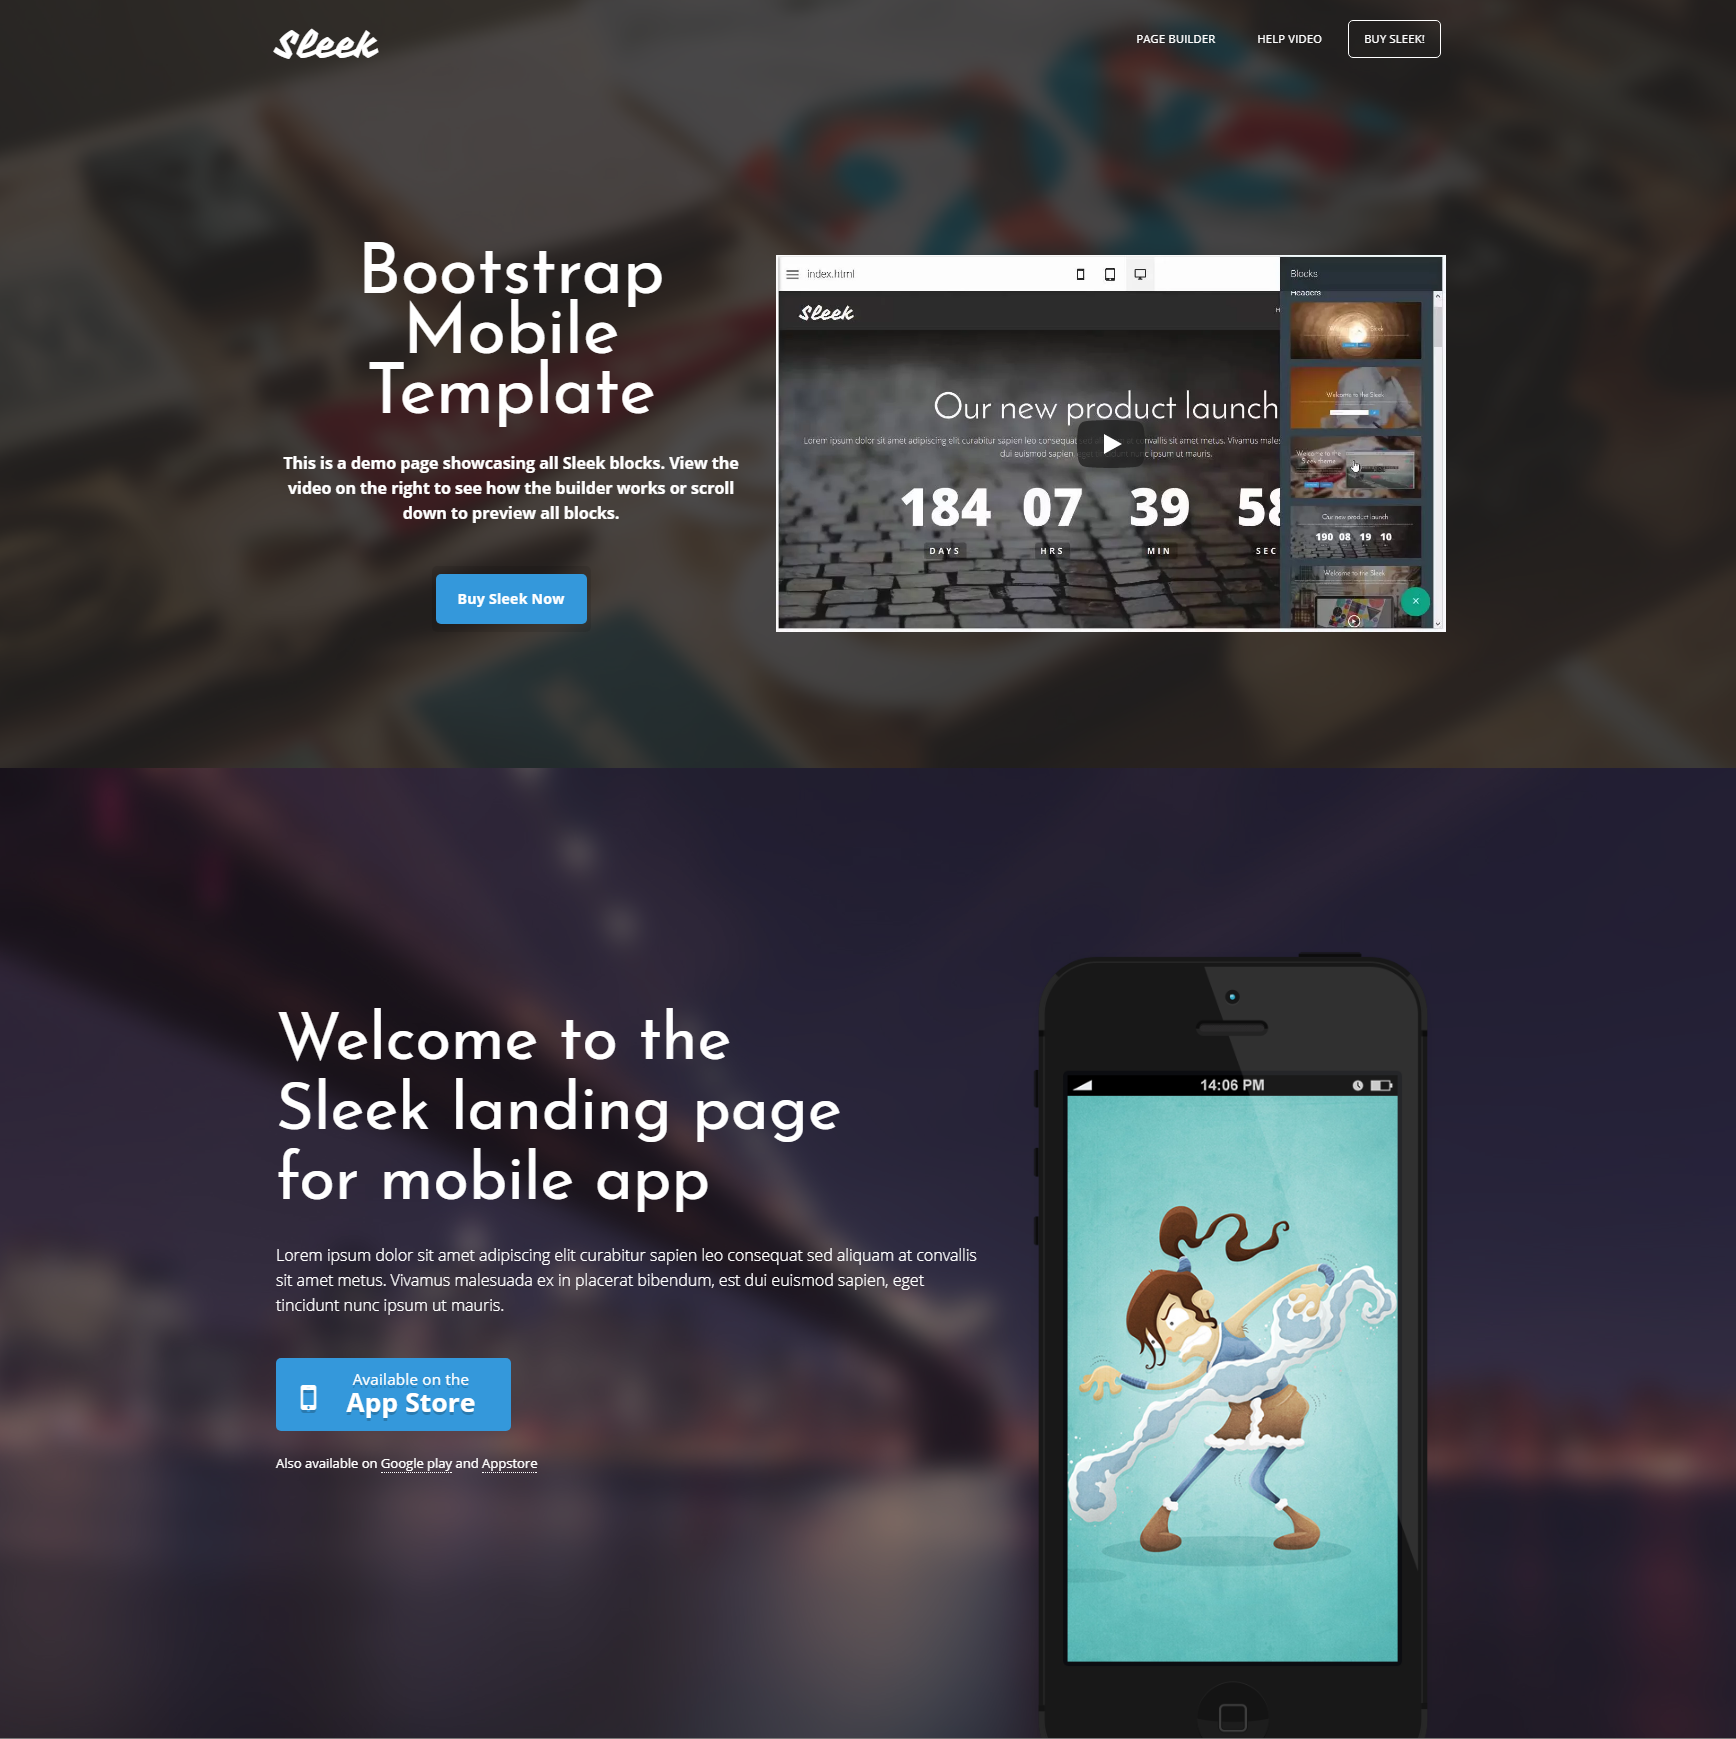 Free Bootstrap Mobile Templates